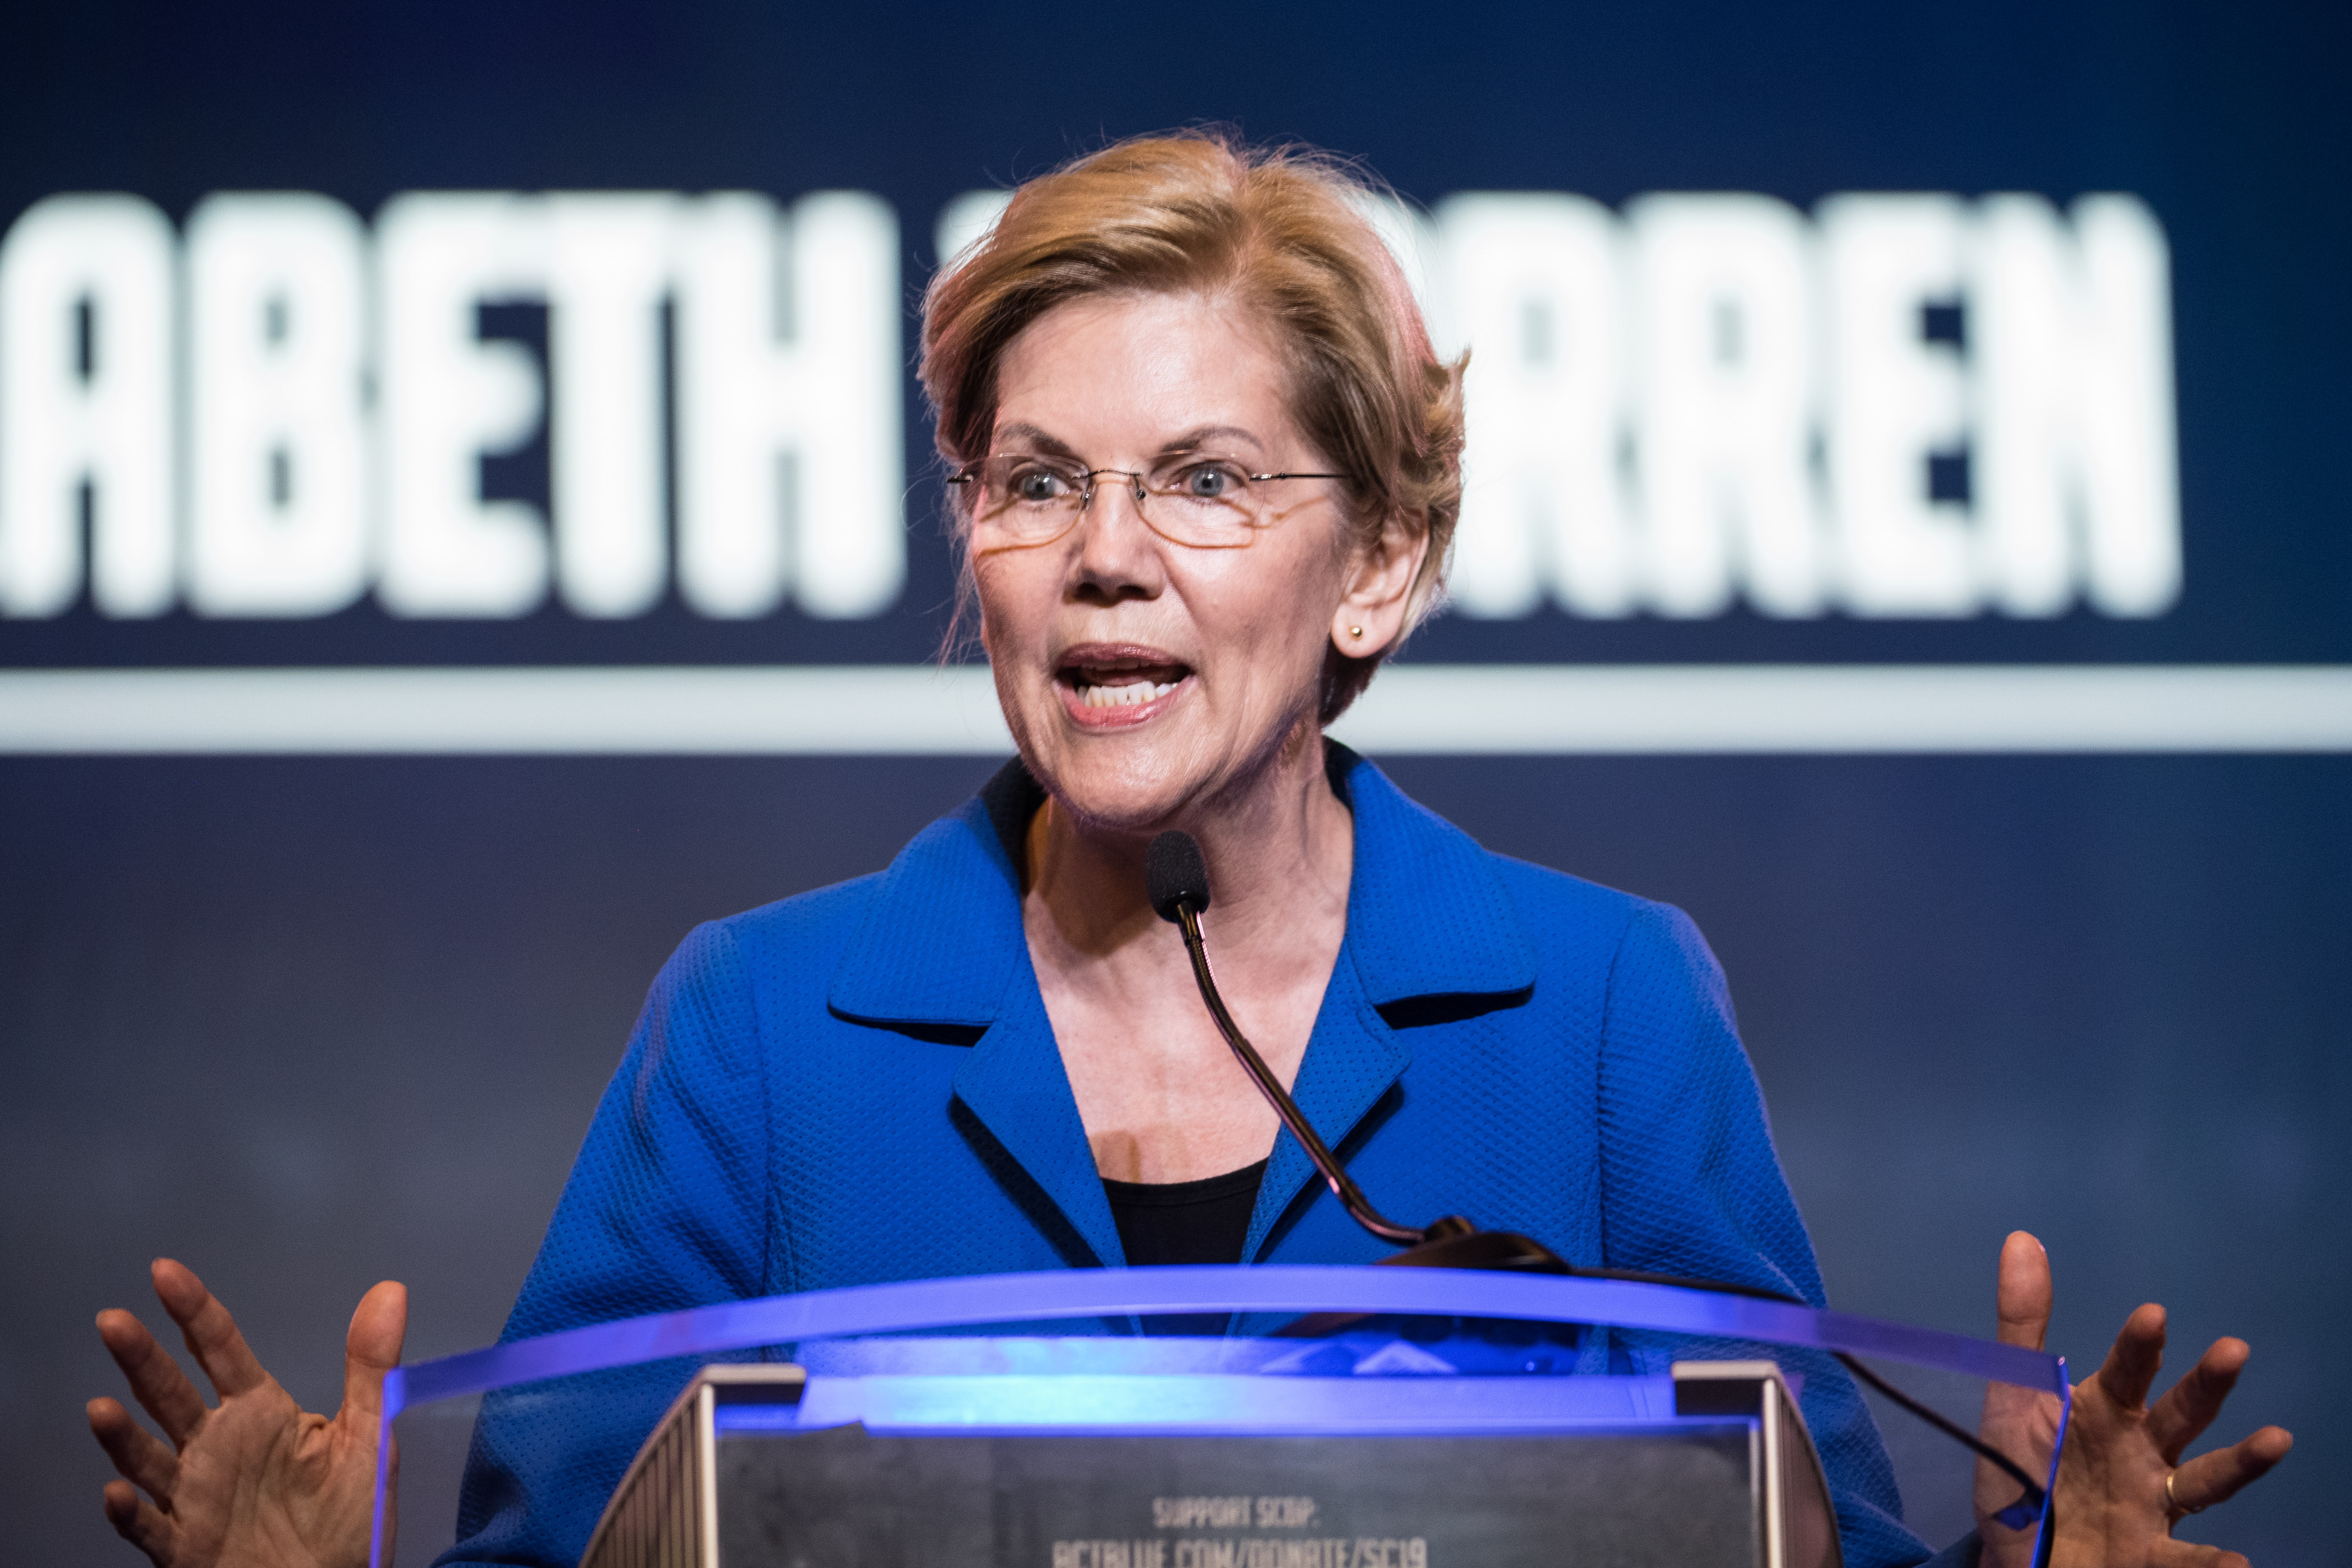 Democratic presidential candidate Sen. Elizabeth Warren addresses the crowd at the 2019 South Carolina Democratic Party State Convention on June 22, 2019 in Columbia, South Carolina. (Sean Rayford/Getty Images)